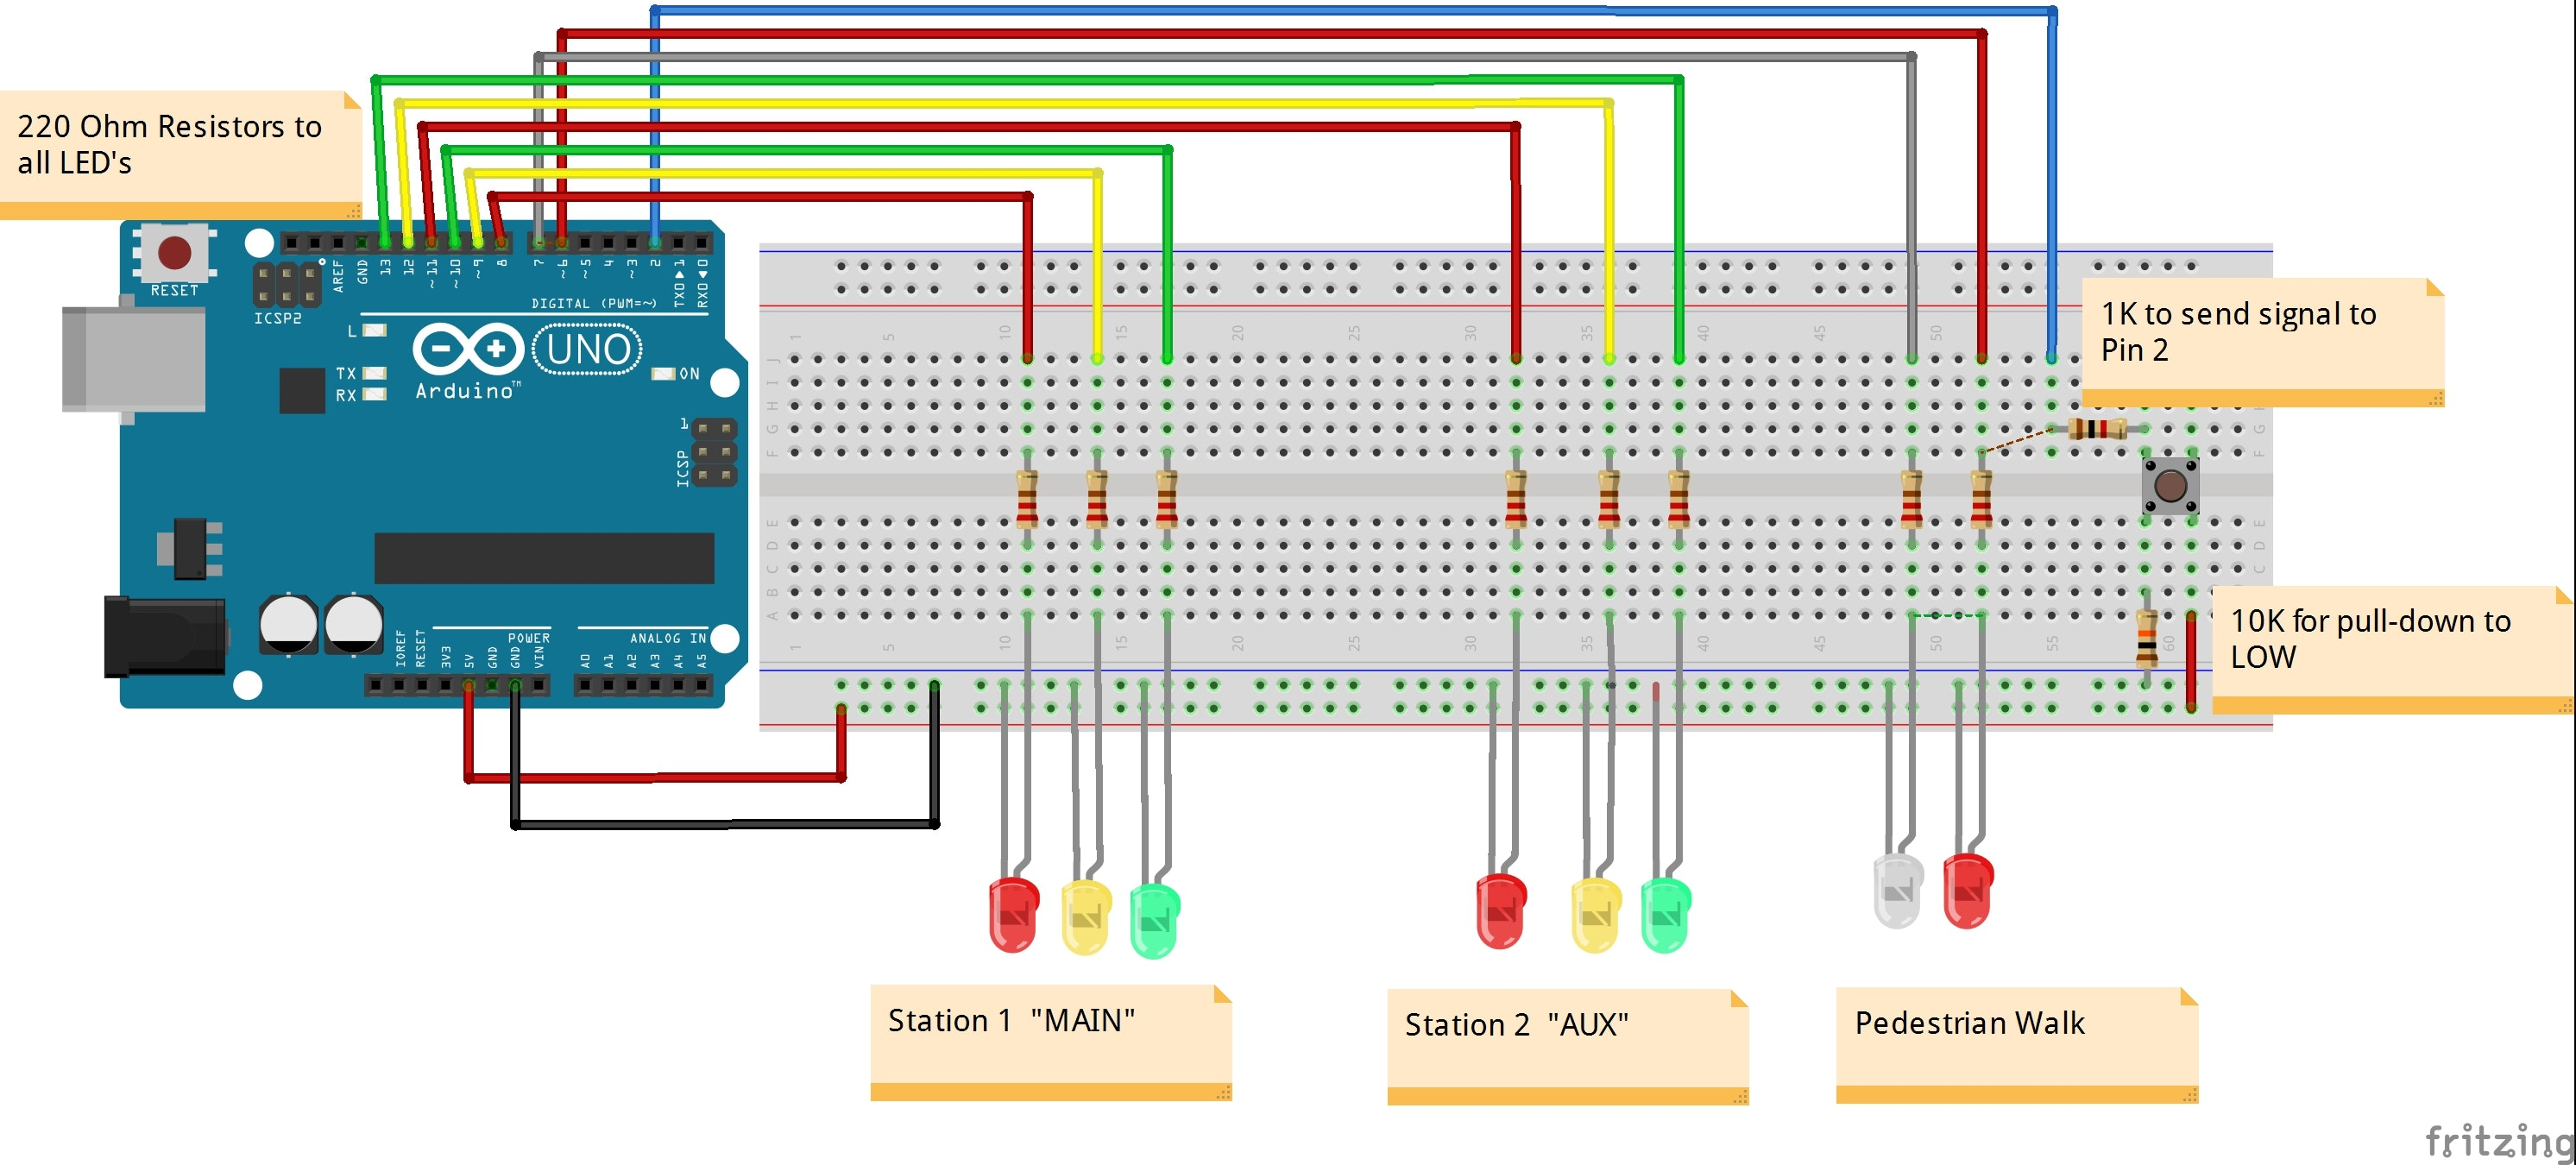 2 way intersection with pedestrian walk cycle hackster io rh hackster io 3-Way Electrical Switch Wiring Diagram 3-Way Switch Light Wiring Schematic